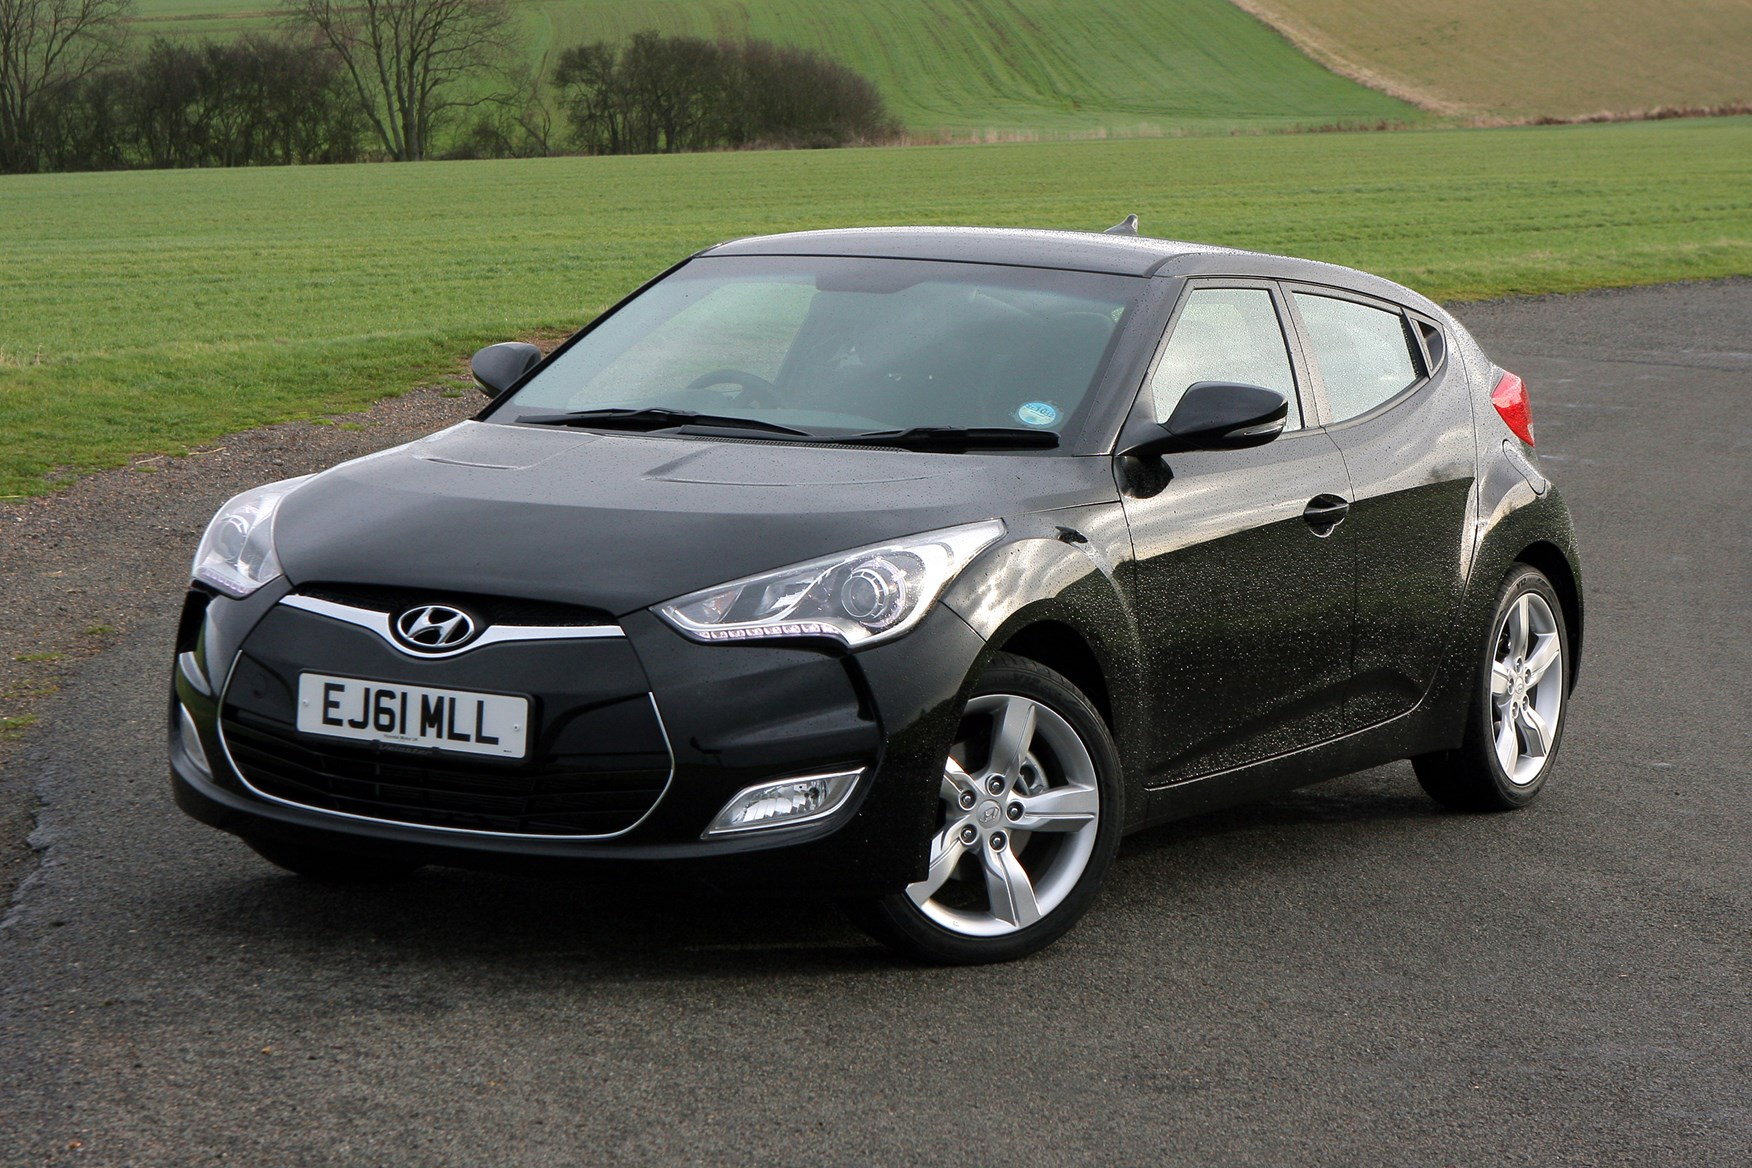 Hyundai Veloster Hatchback 2012 2014 Features Equipment And Accessories Parkers